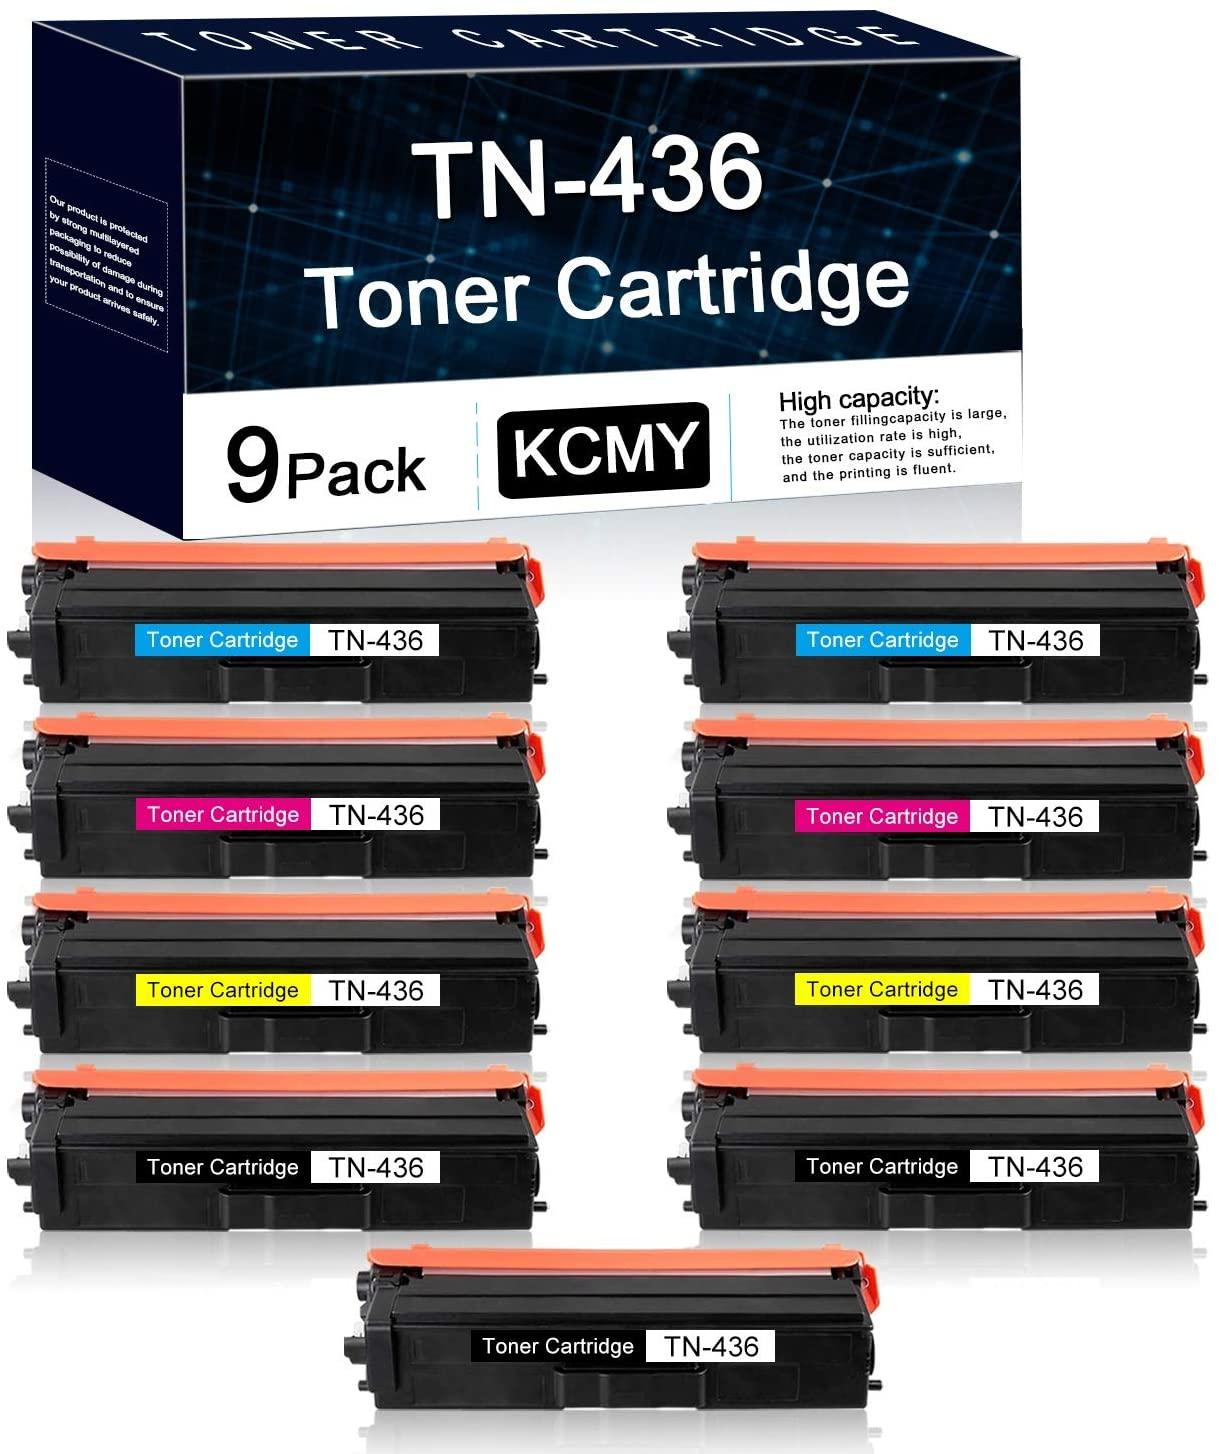 9 Pack TN436 (3BK+2C+2M+2Y) Compatible Toner Cartridge Replacement for Brother HL-L8260CDW L8360CDW L8360CDWT L9310CDW L9310CDWT L9310CDWTT DCP-L8410CDW MFC-L8610CDW Printers Toner